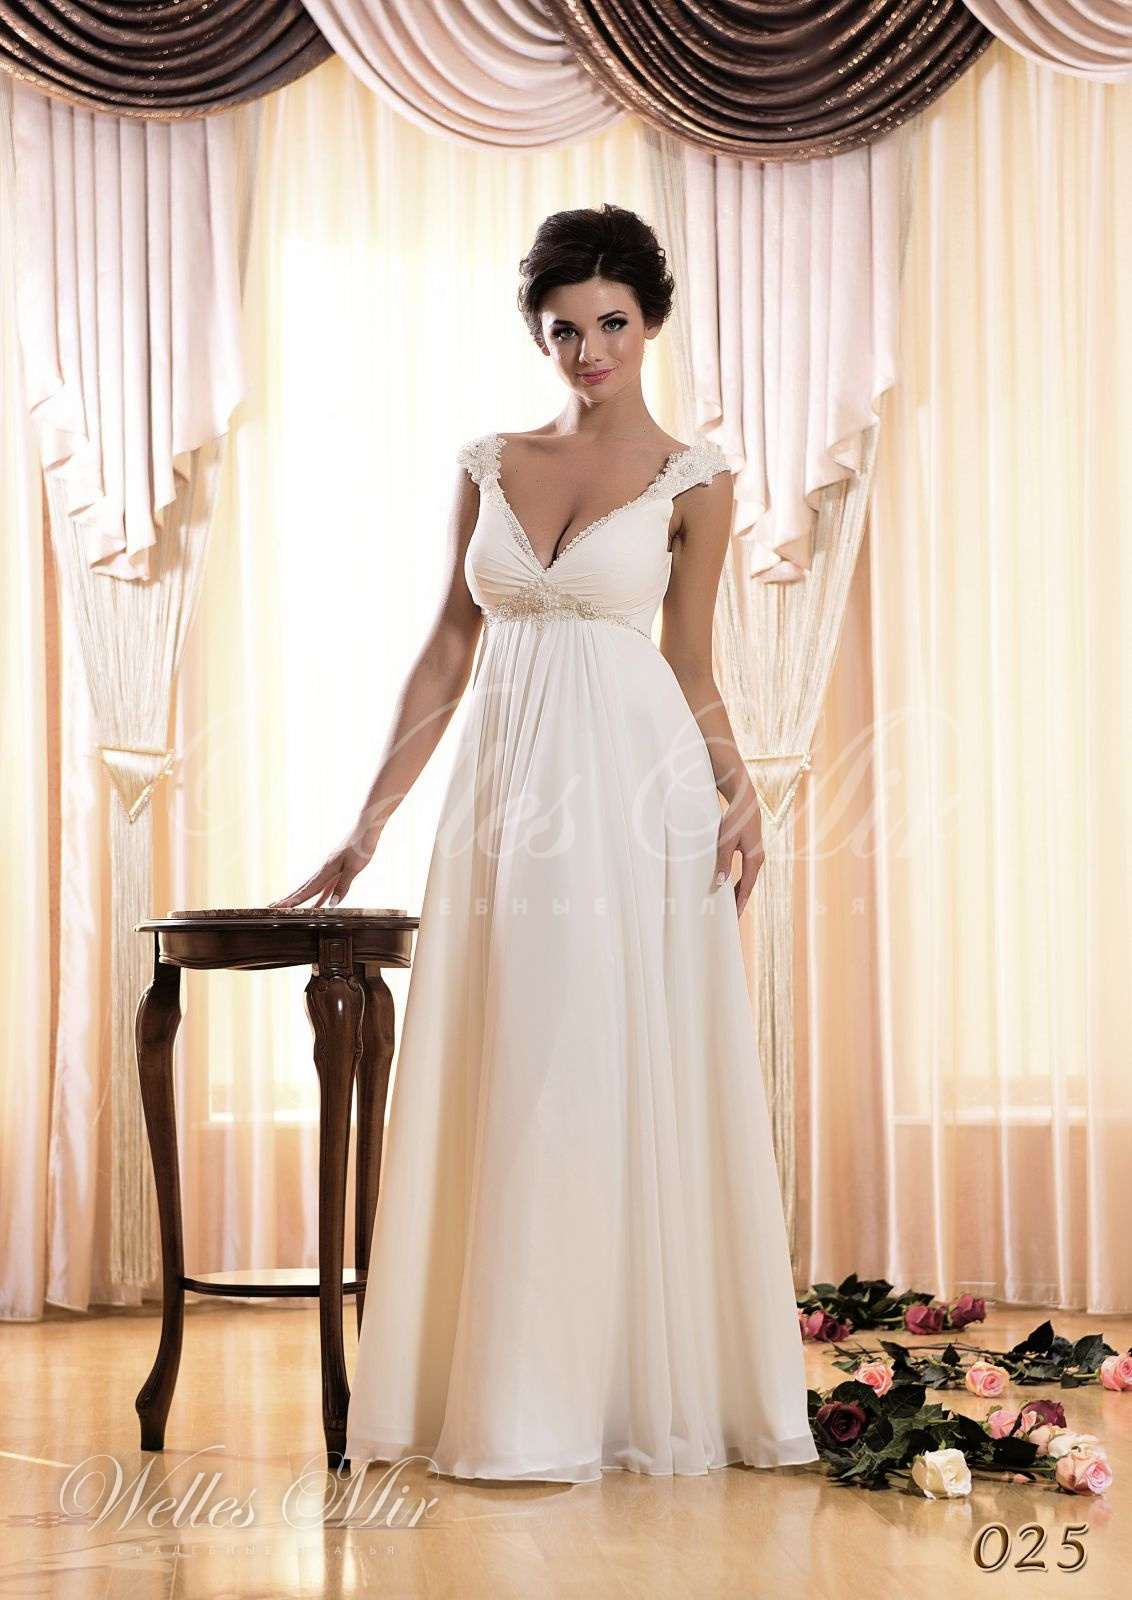 Wedding dresses 025